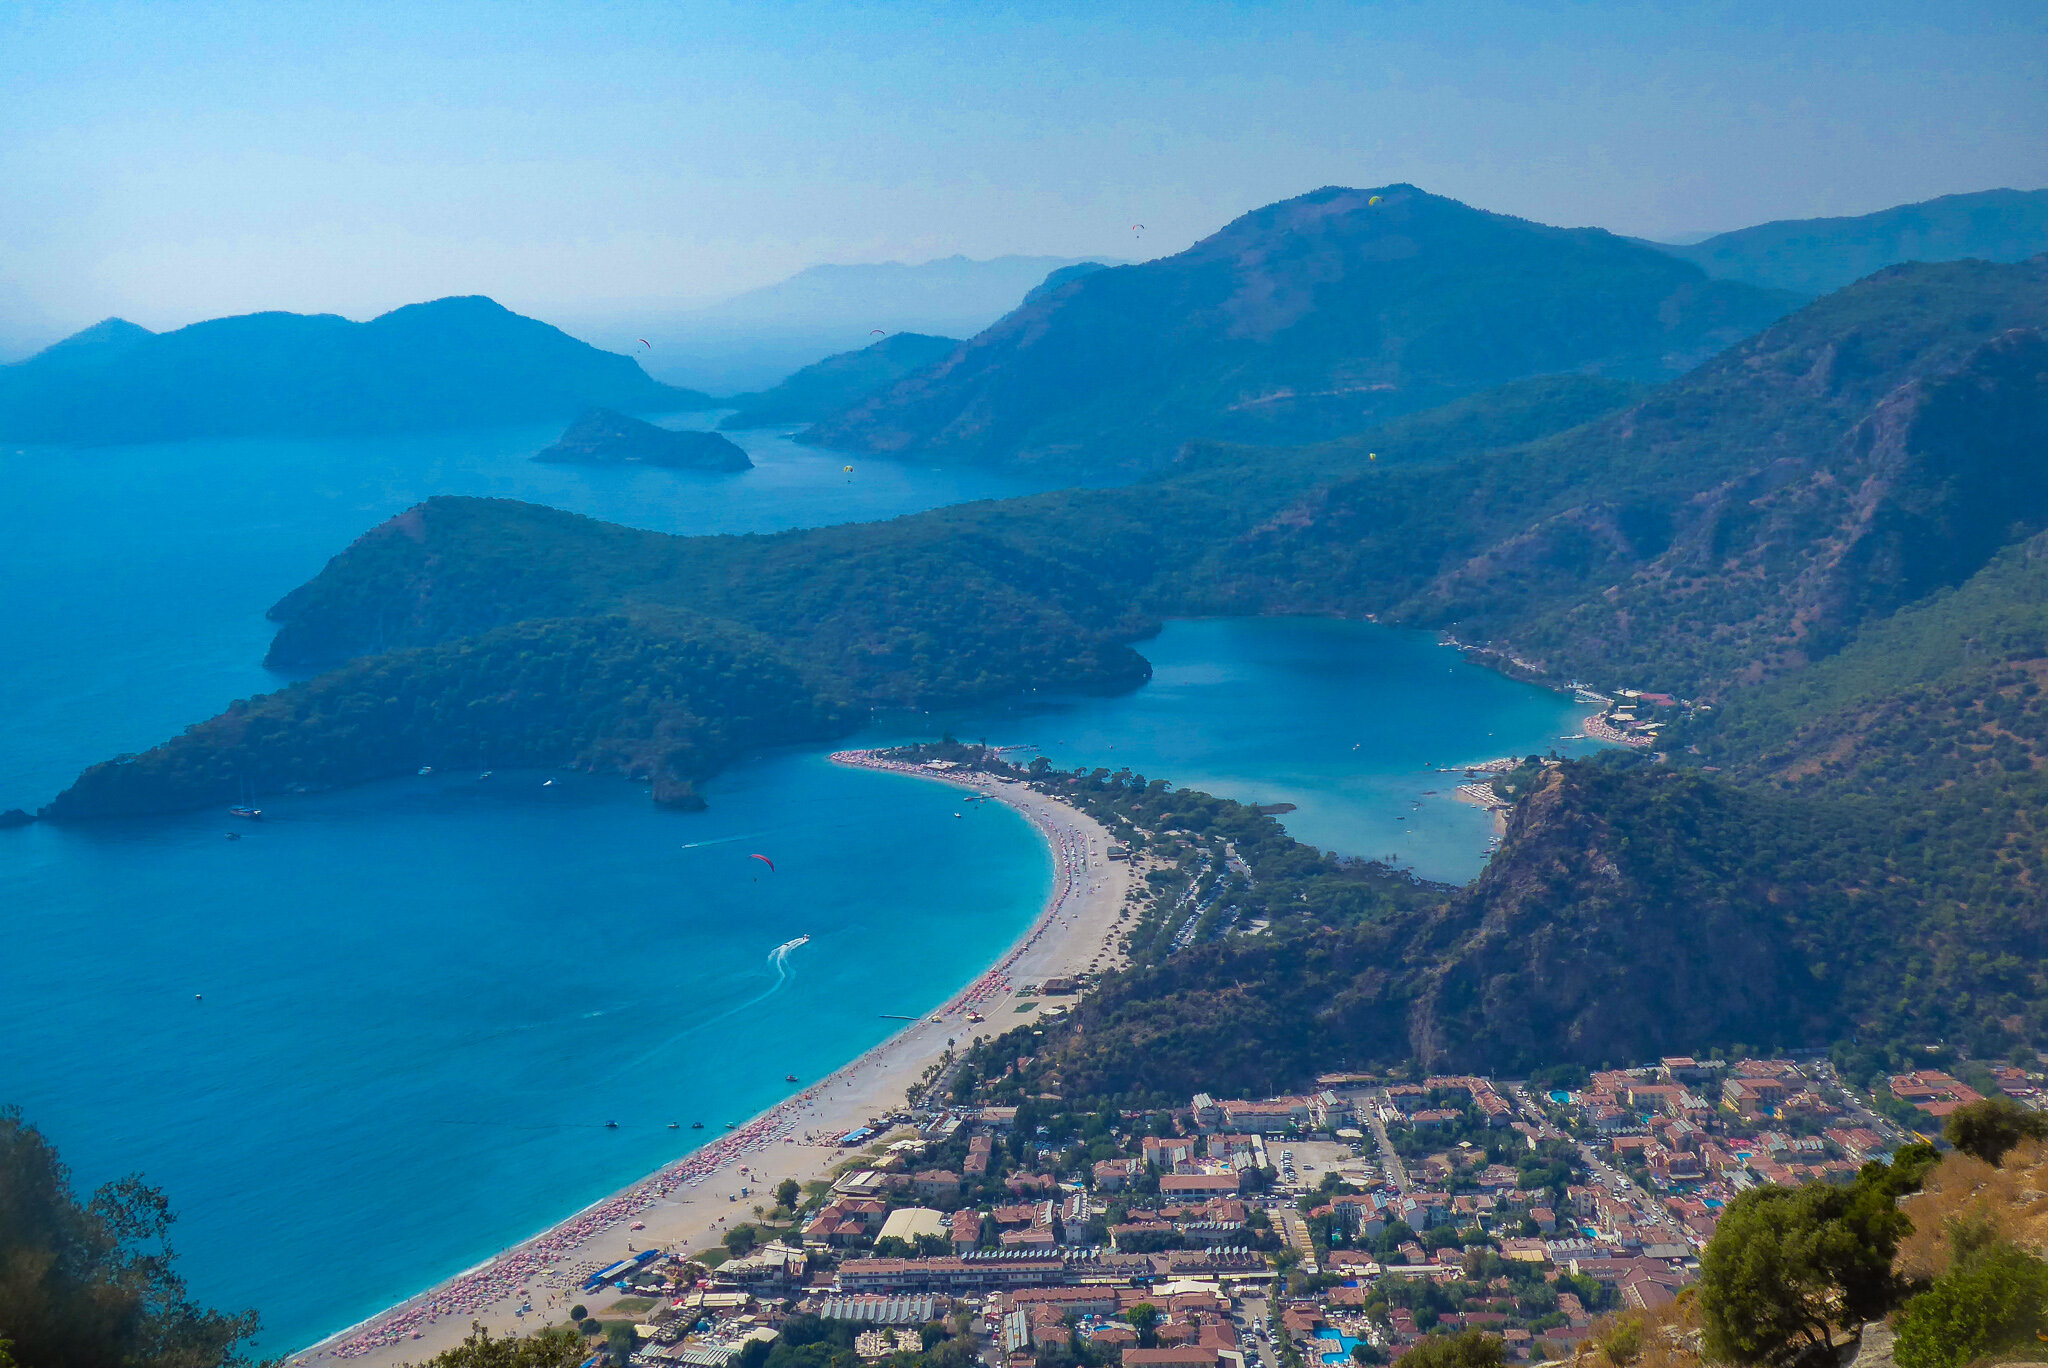 View down to the Oludeniz Beach and the Blue Lagoon